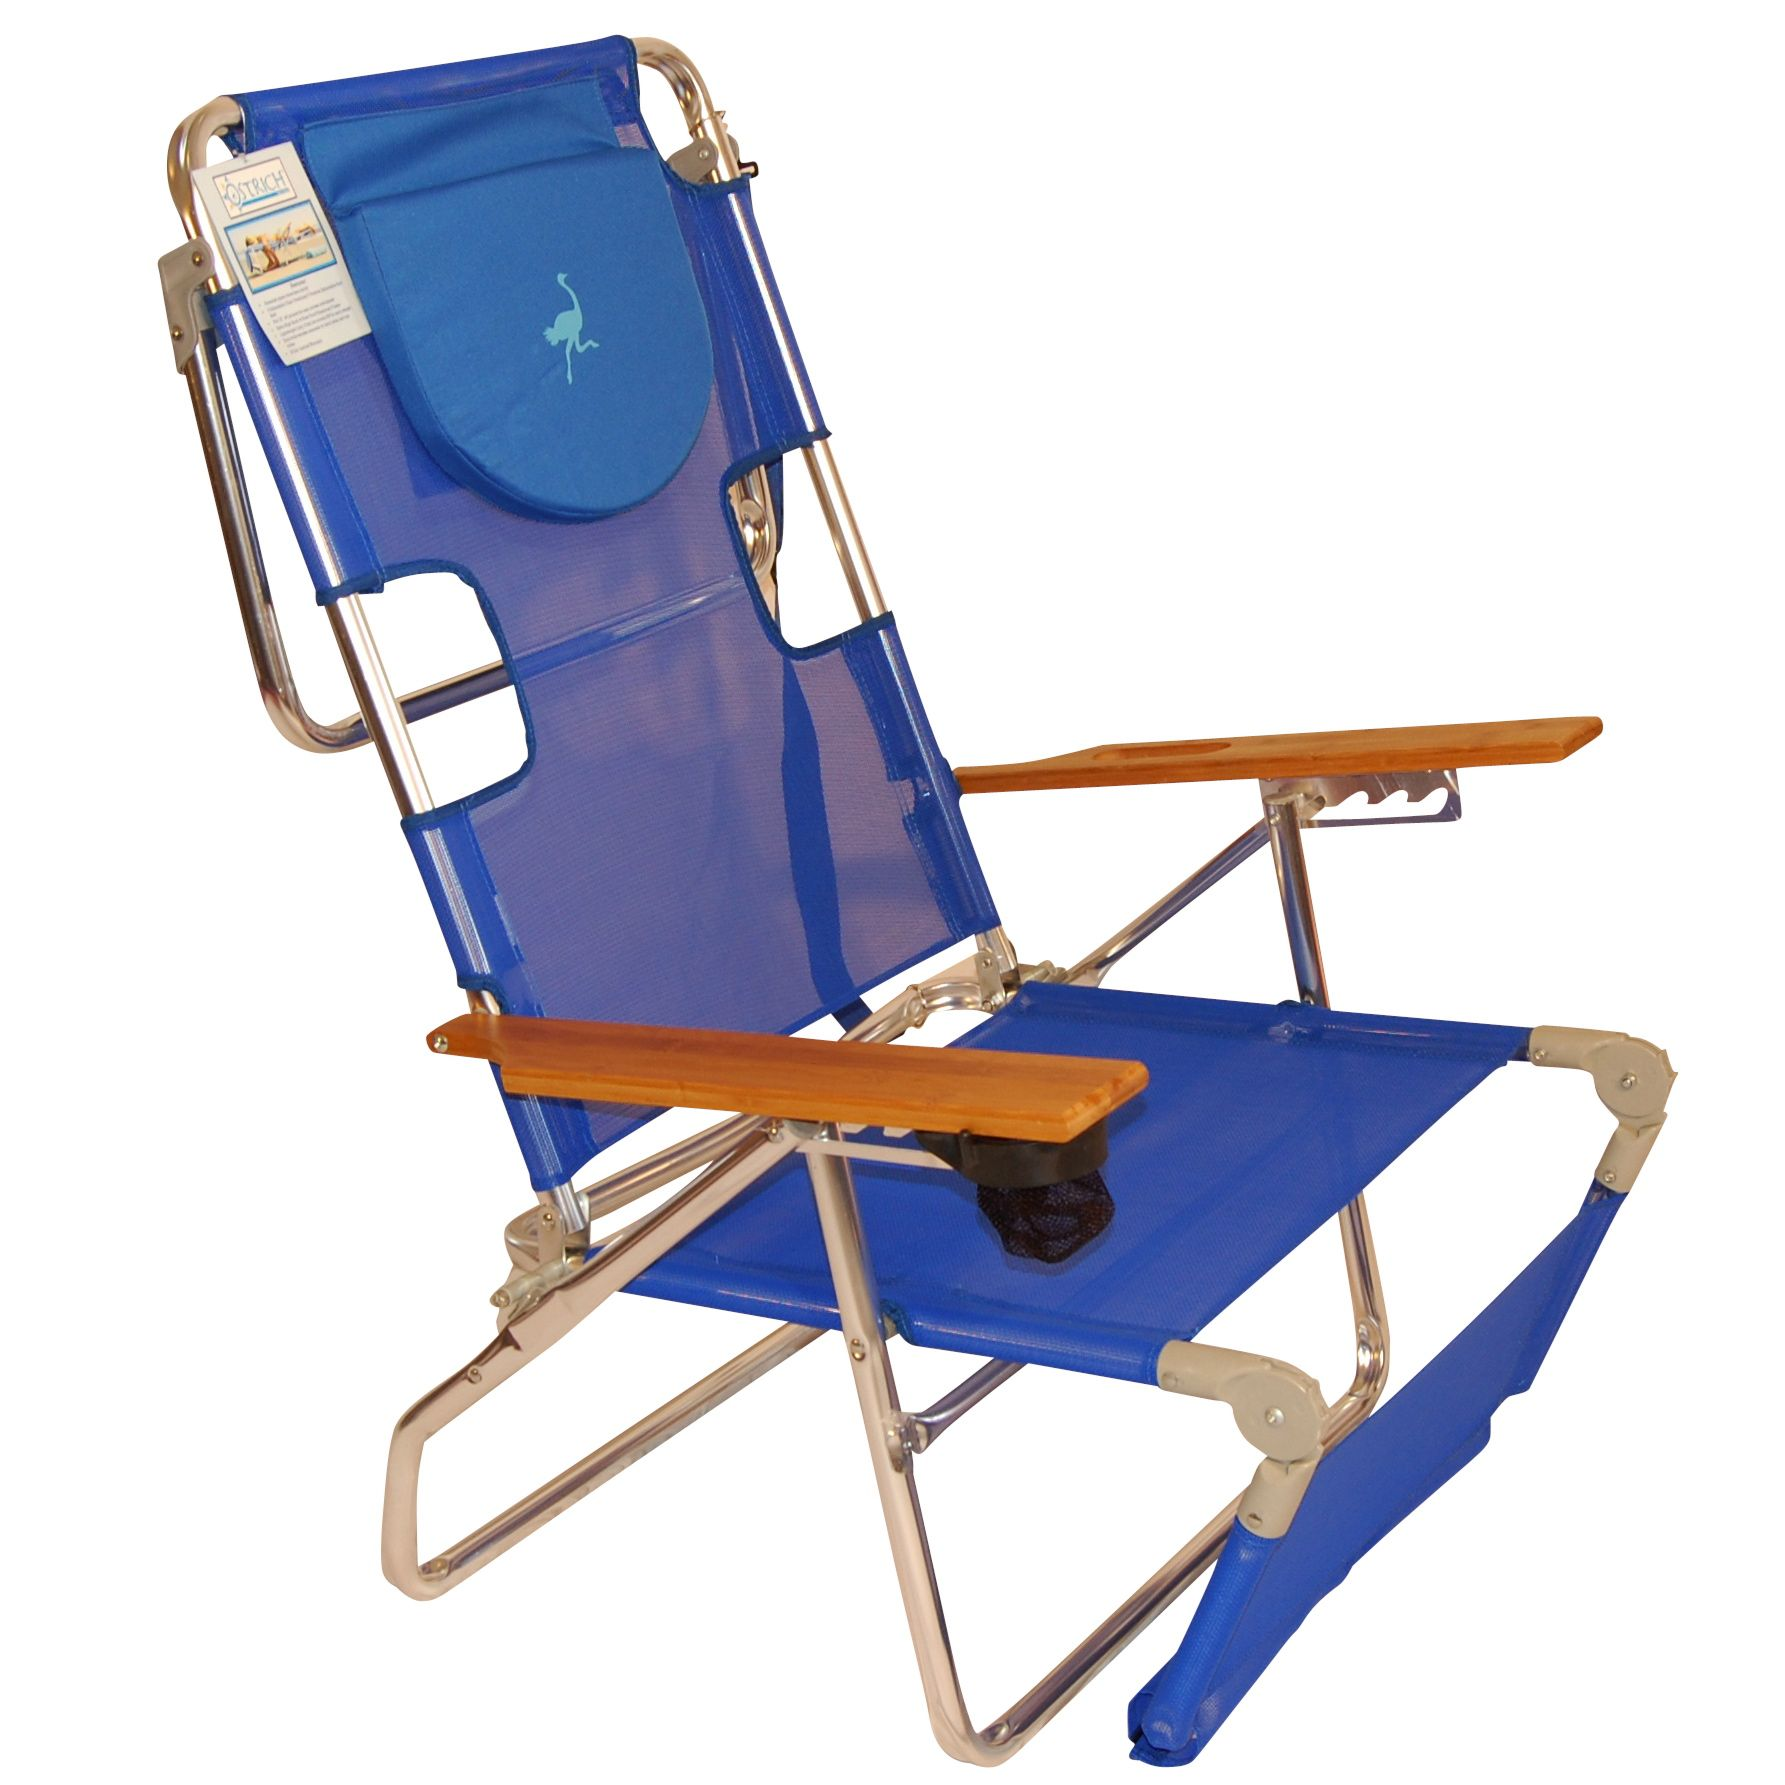 Most fortable fold up bed Beach chairs for big and tall people